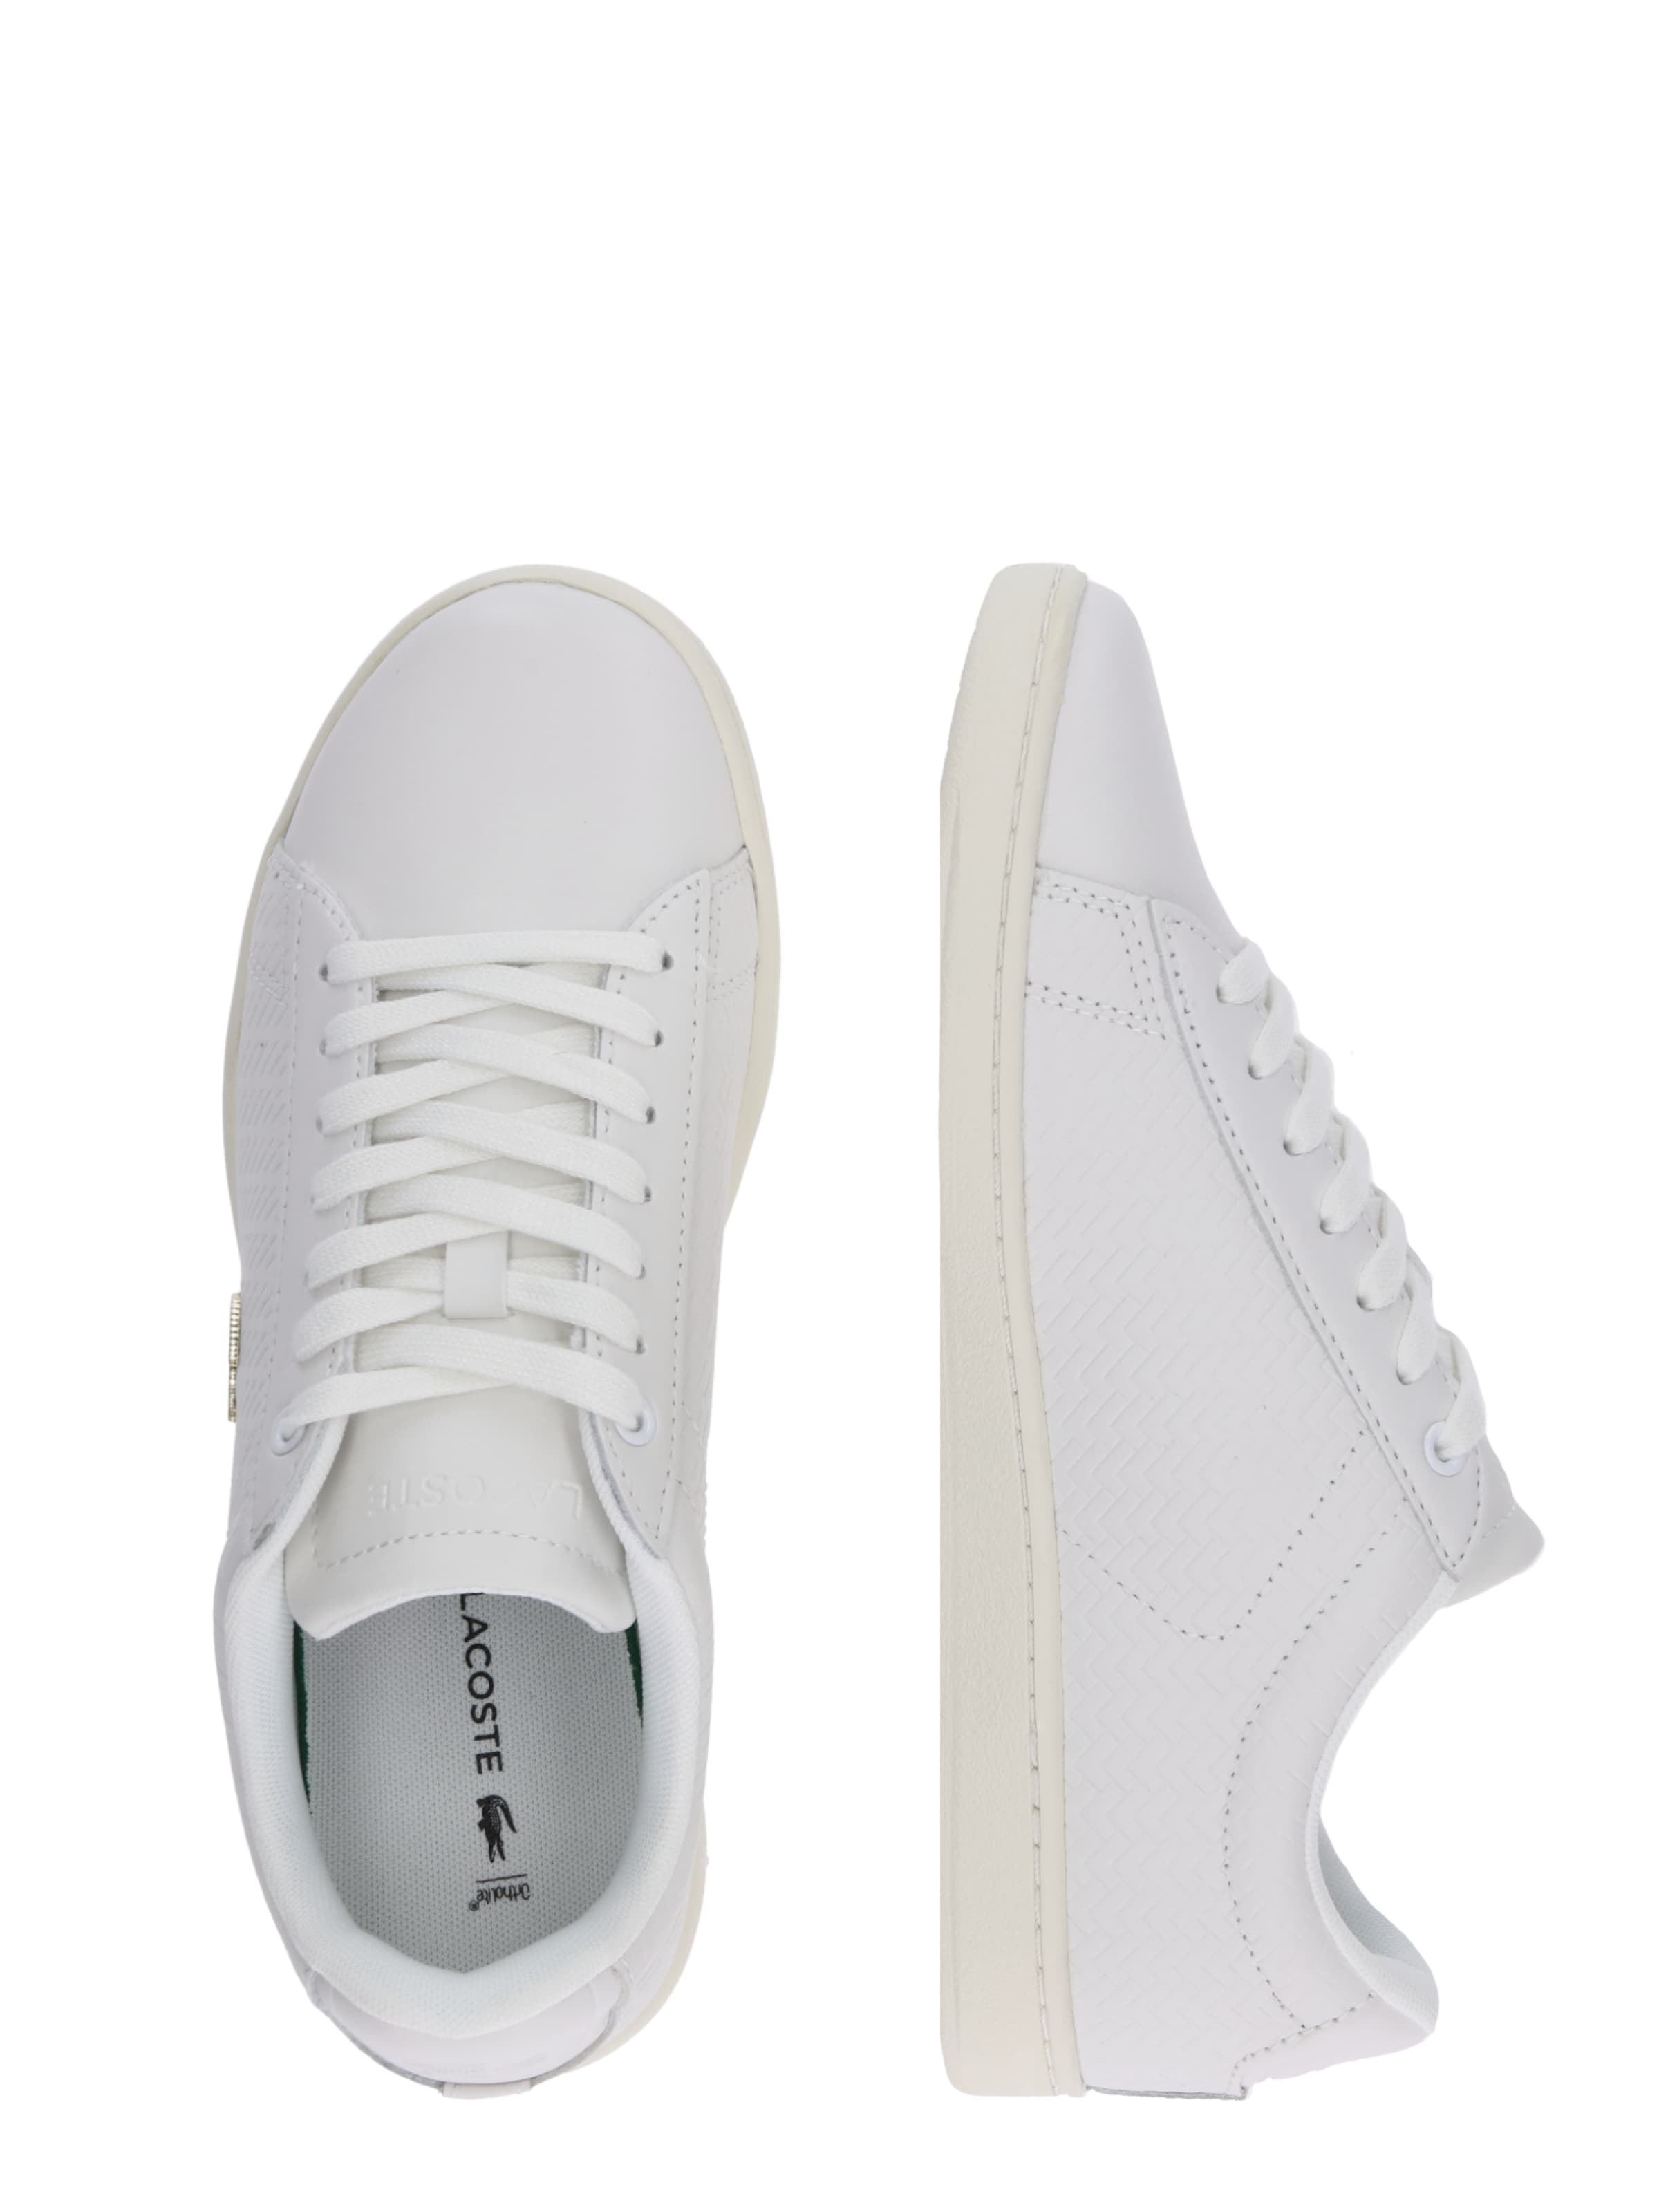 119 'carnaby Sneaker Offwhite 3 Evo Lacoste In Sfa' H29YWEDIe